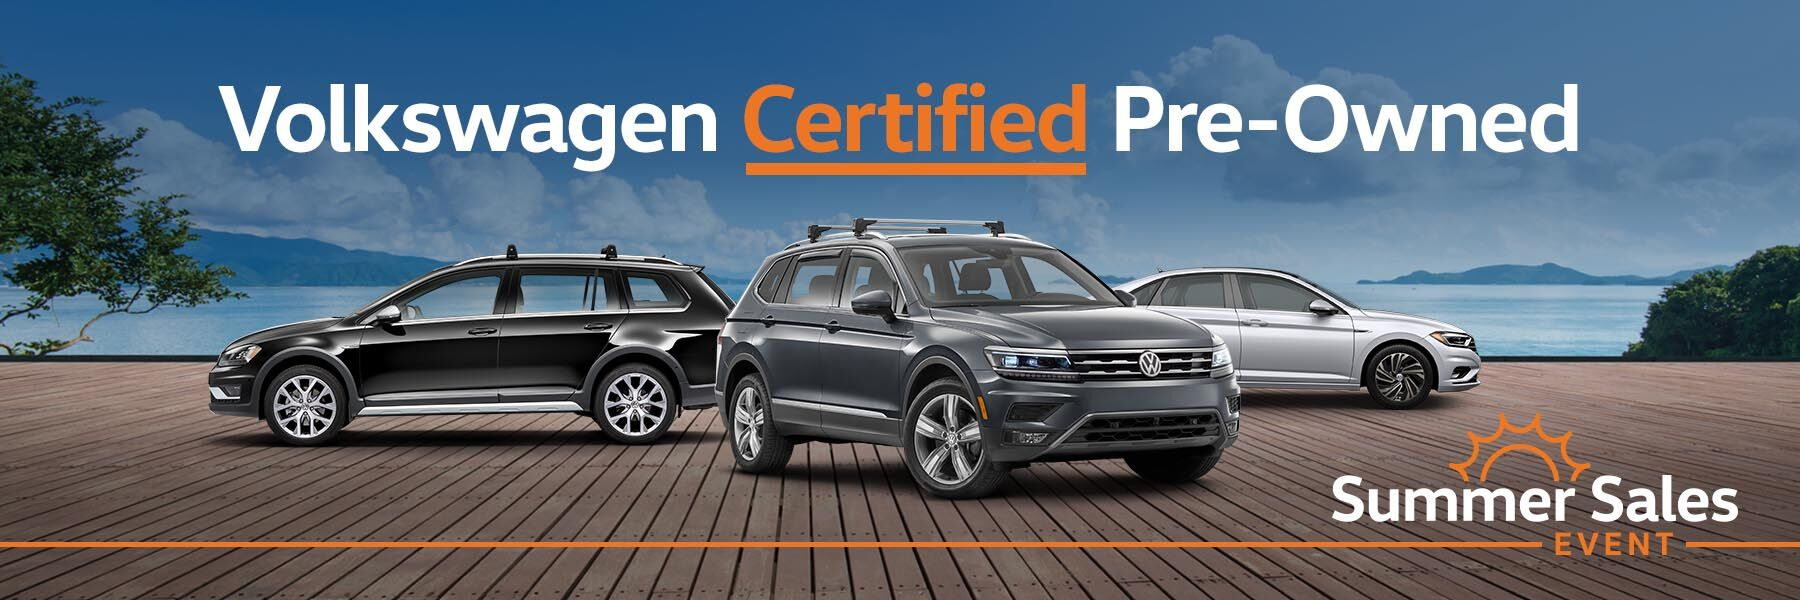 Volkswagen Certified Pre-Owned in Lexington, KY